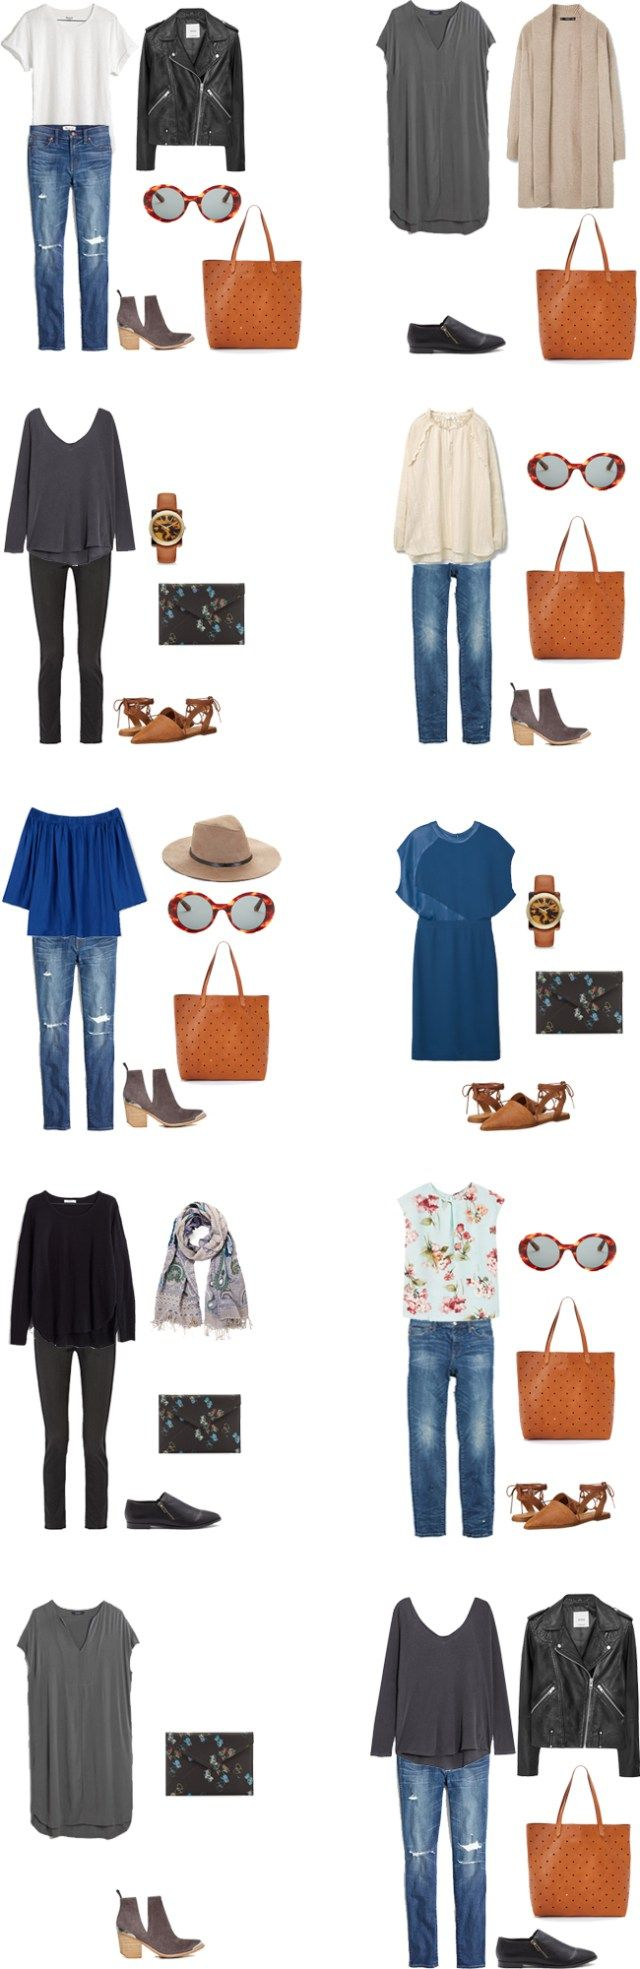 What to Wear in London England Outfit Options 1-10 #travellight #packinglight…